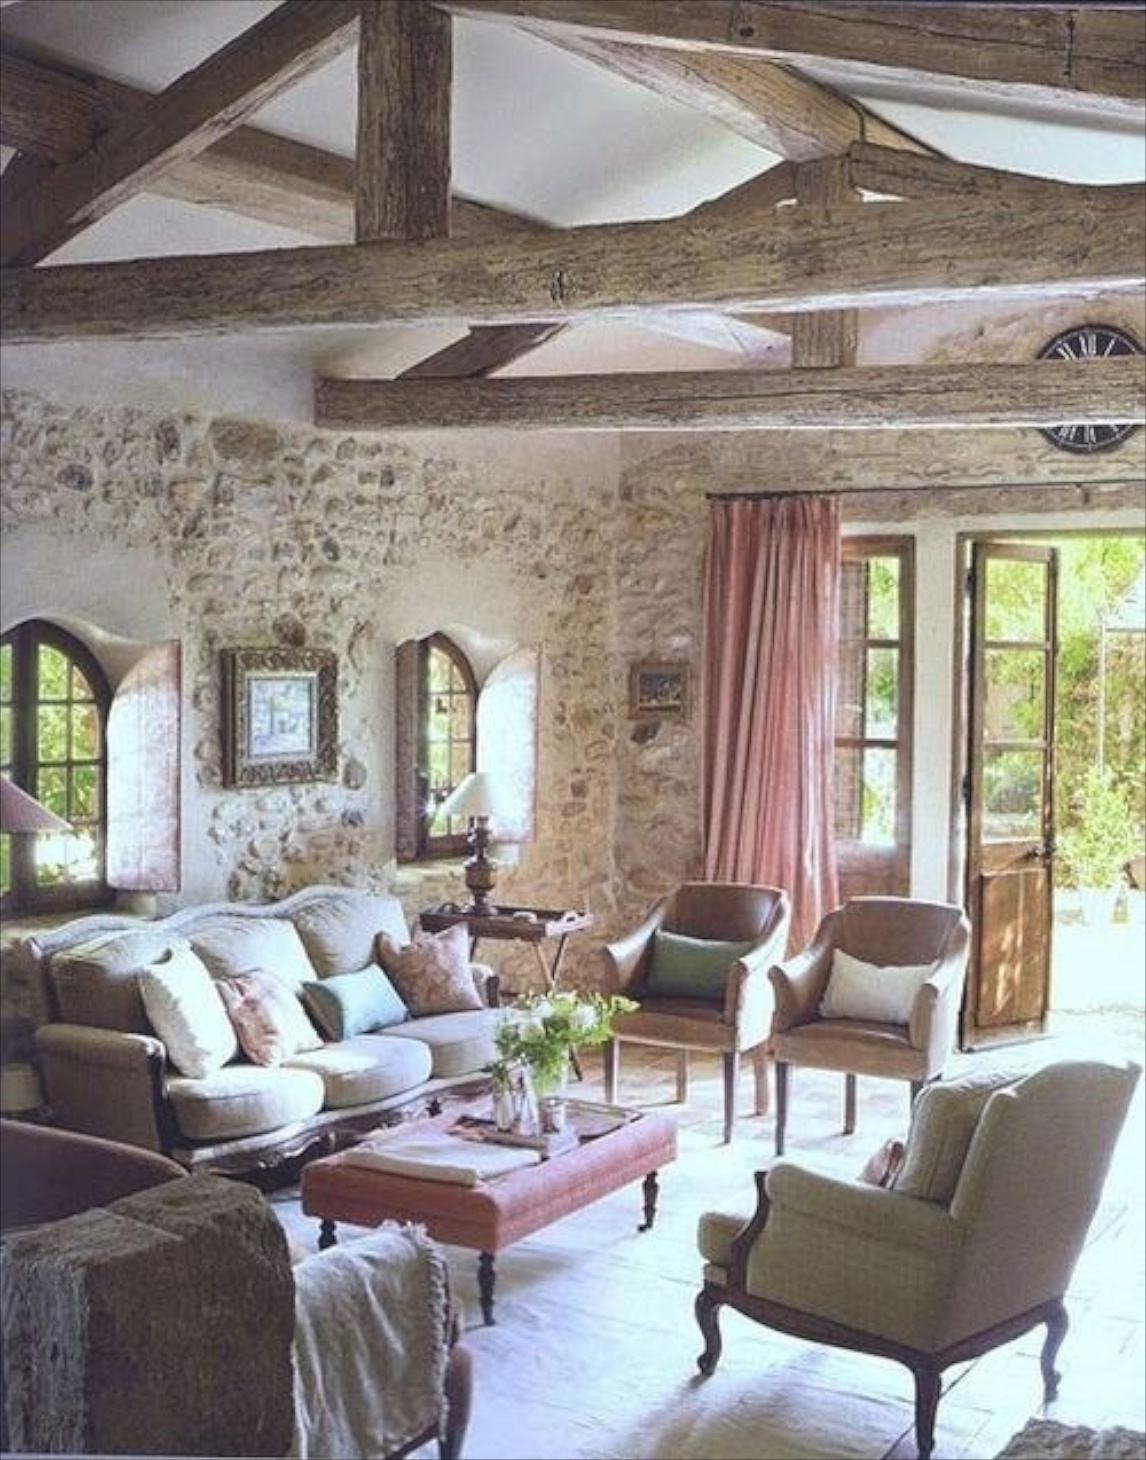 decorating with stone inside the home this elegant and sophisticated living room leans feminine despite the rustic wood trusses and solid rock walls touches of pink bring a sweet emphasis to